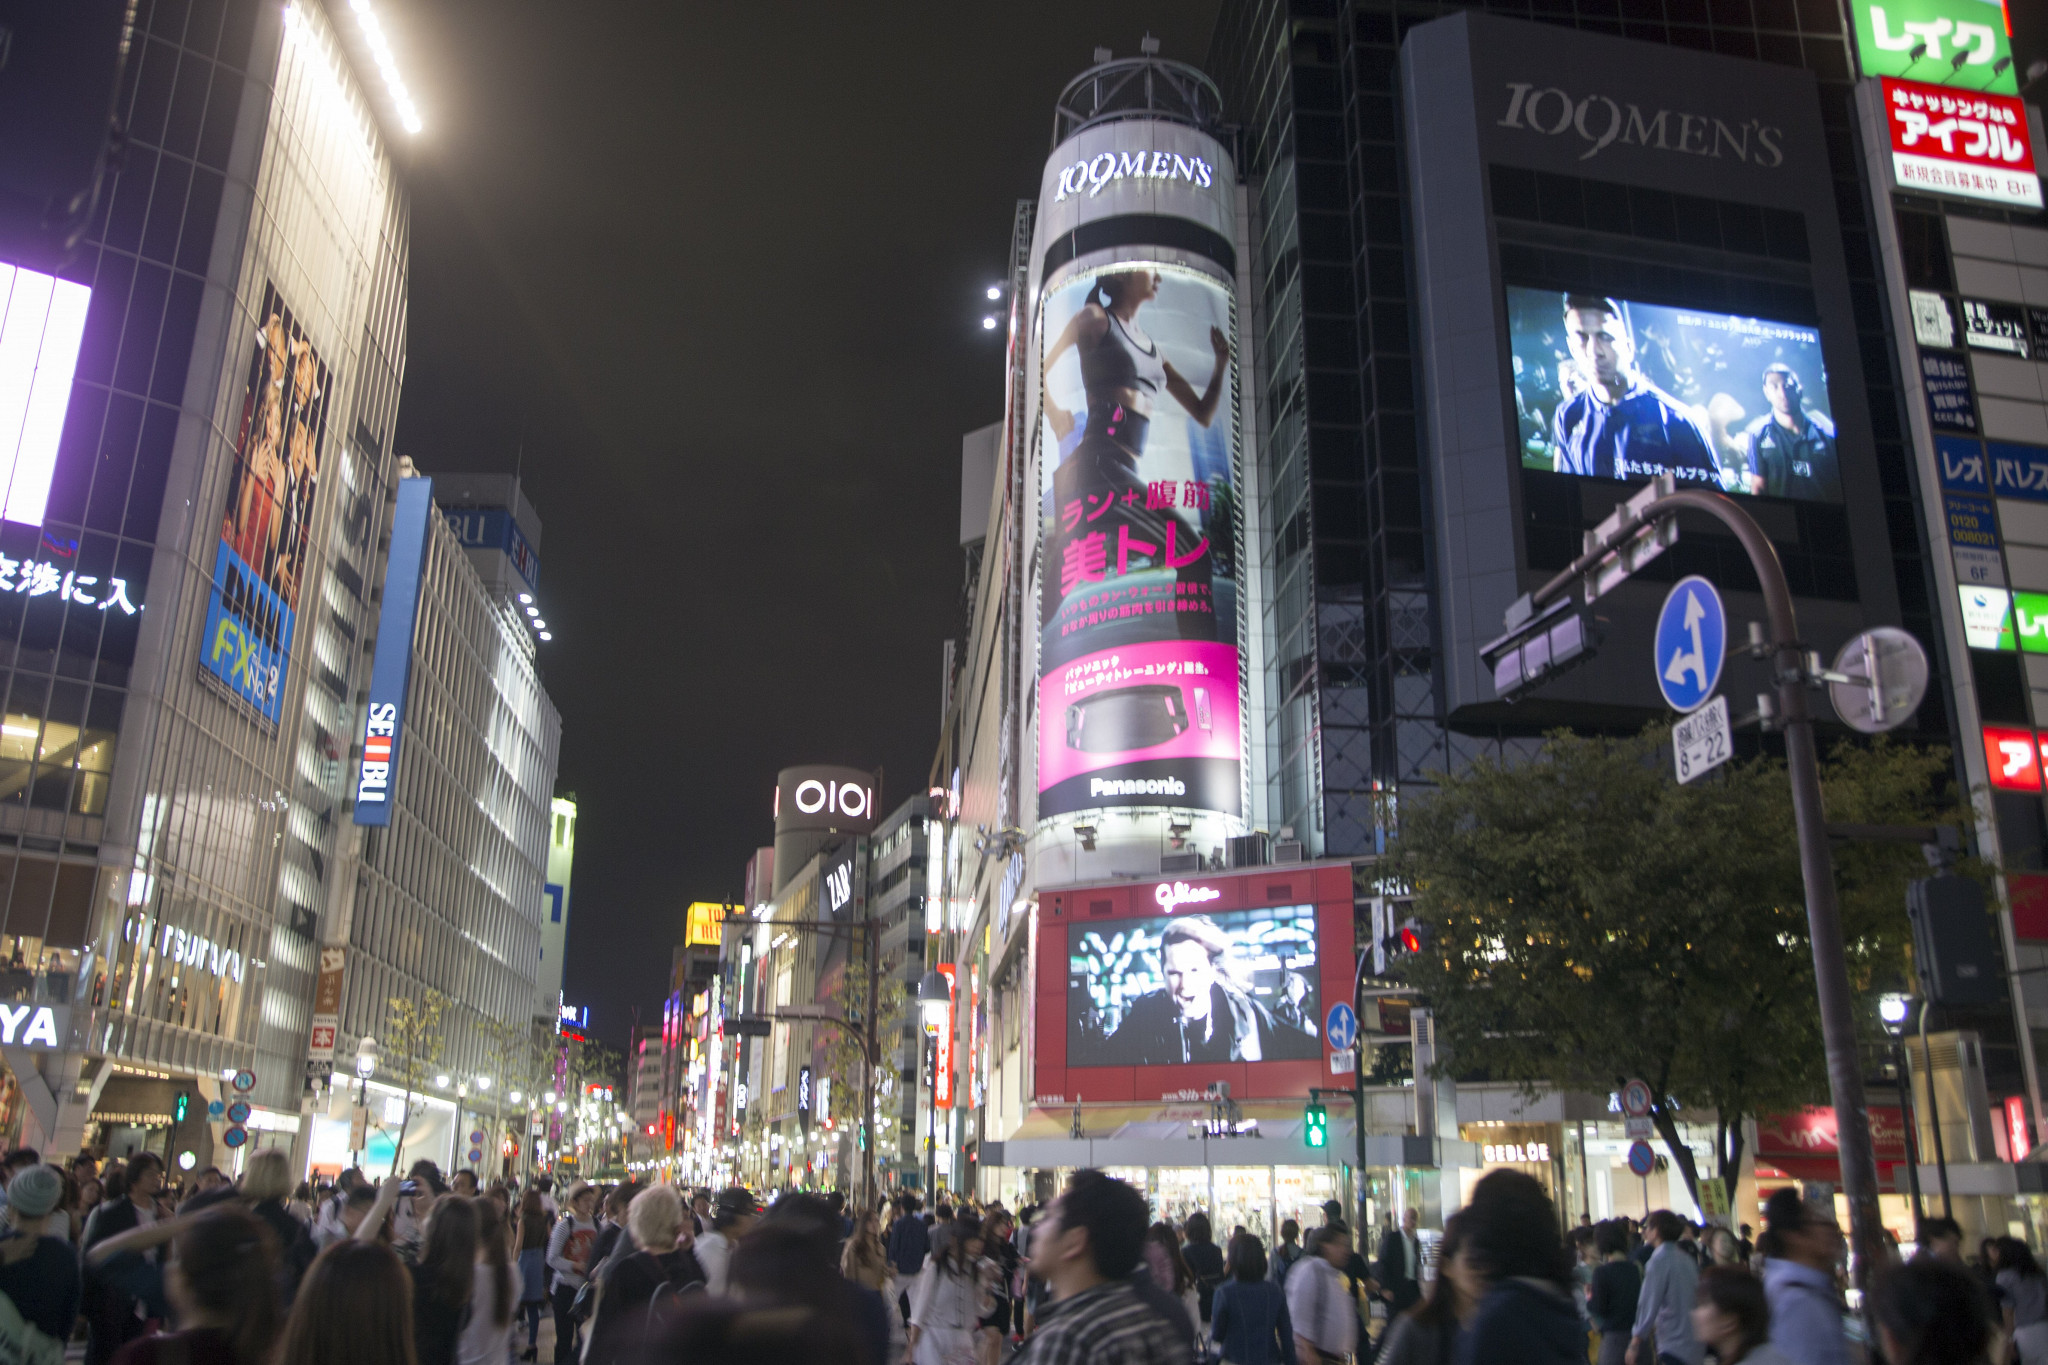 Tokyo streets by night